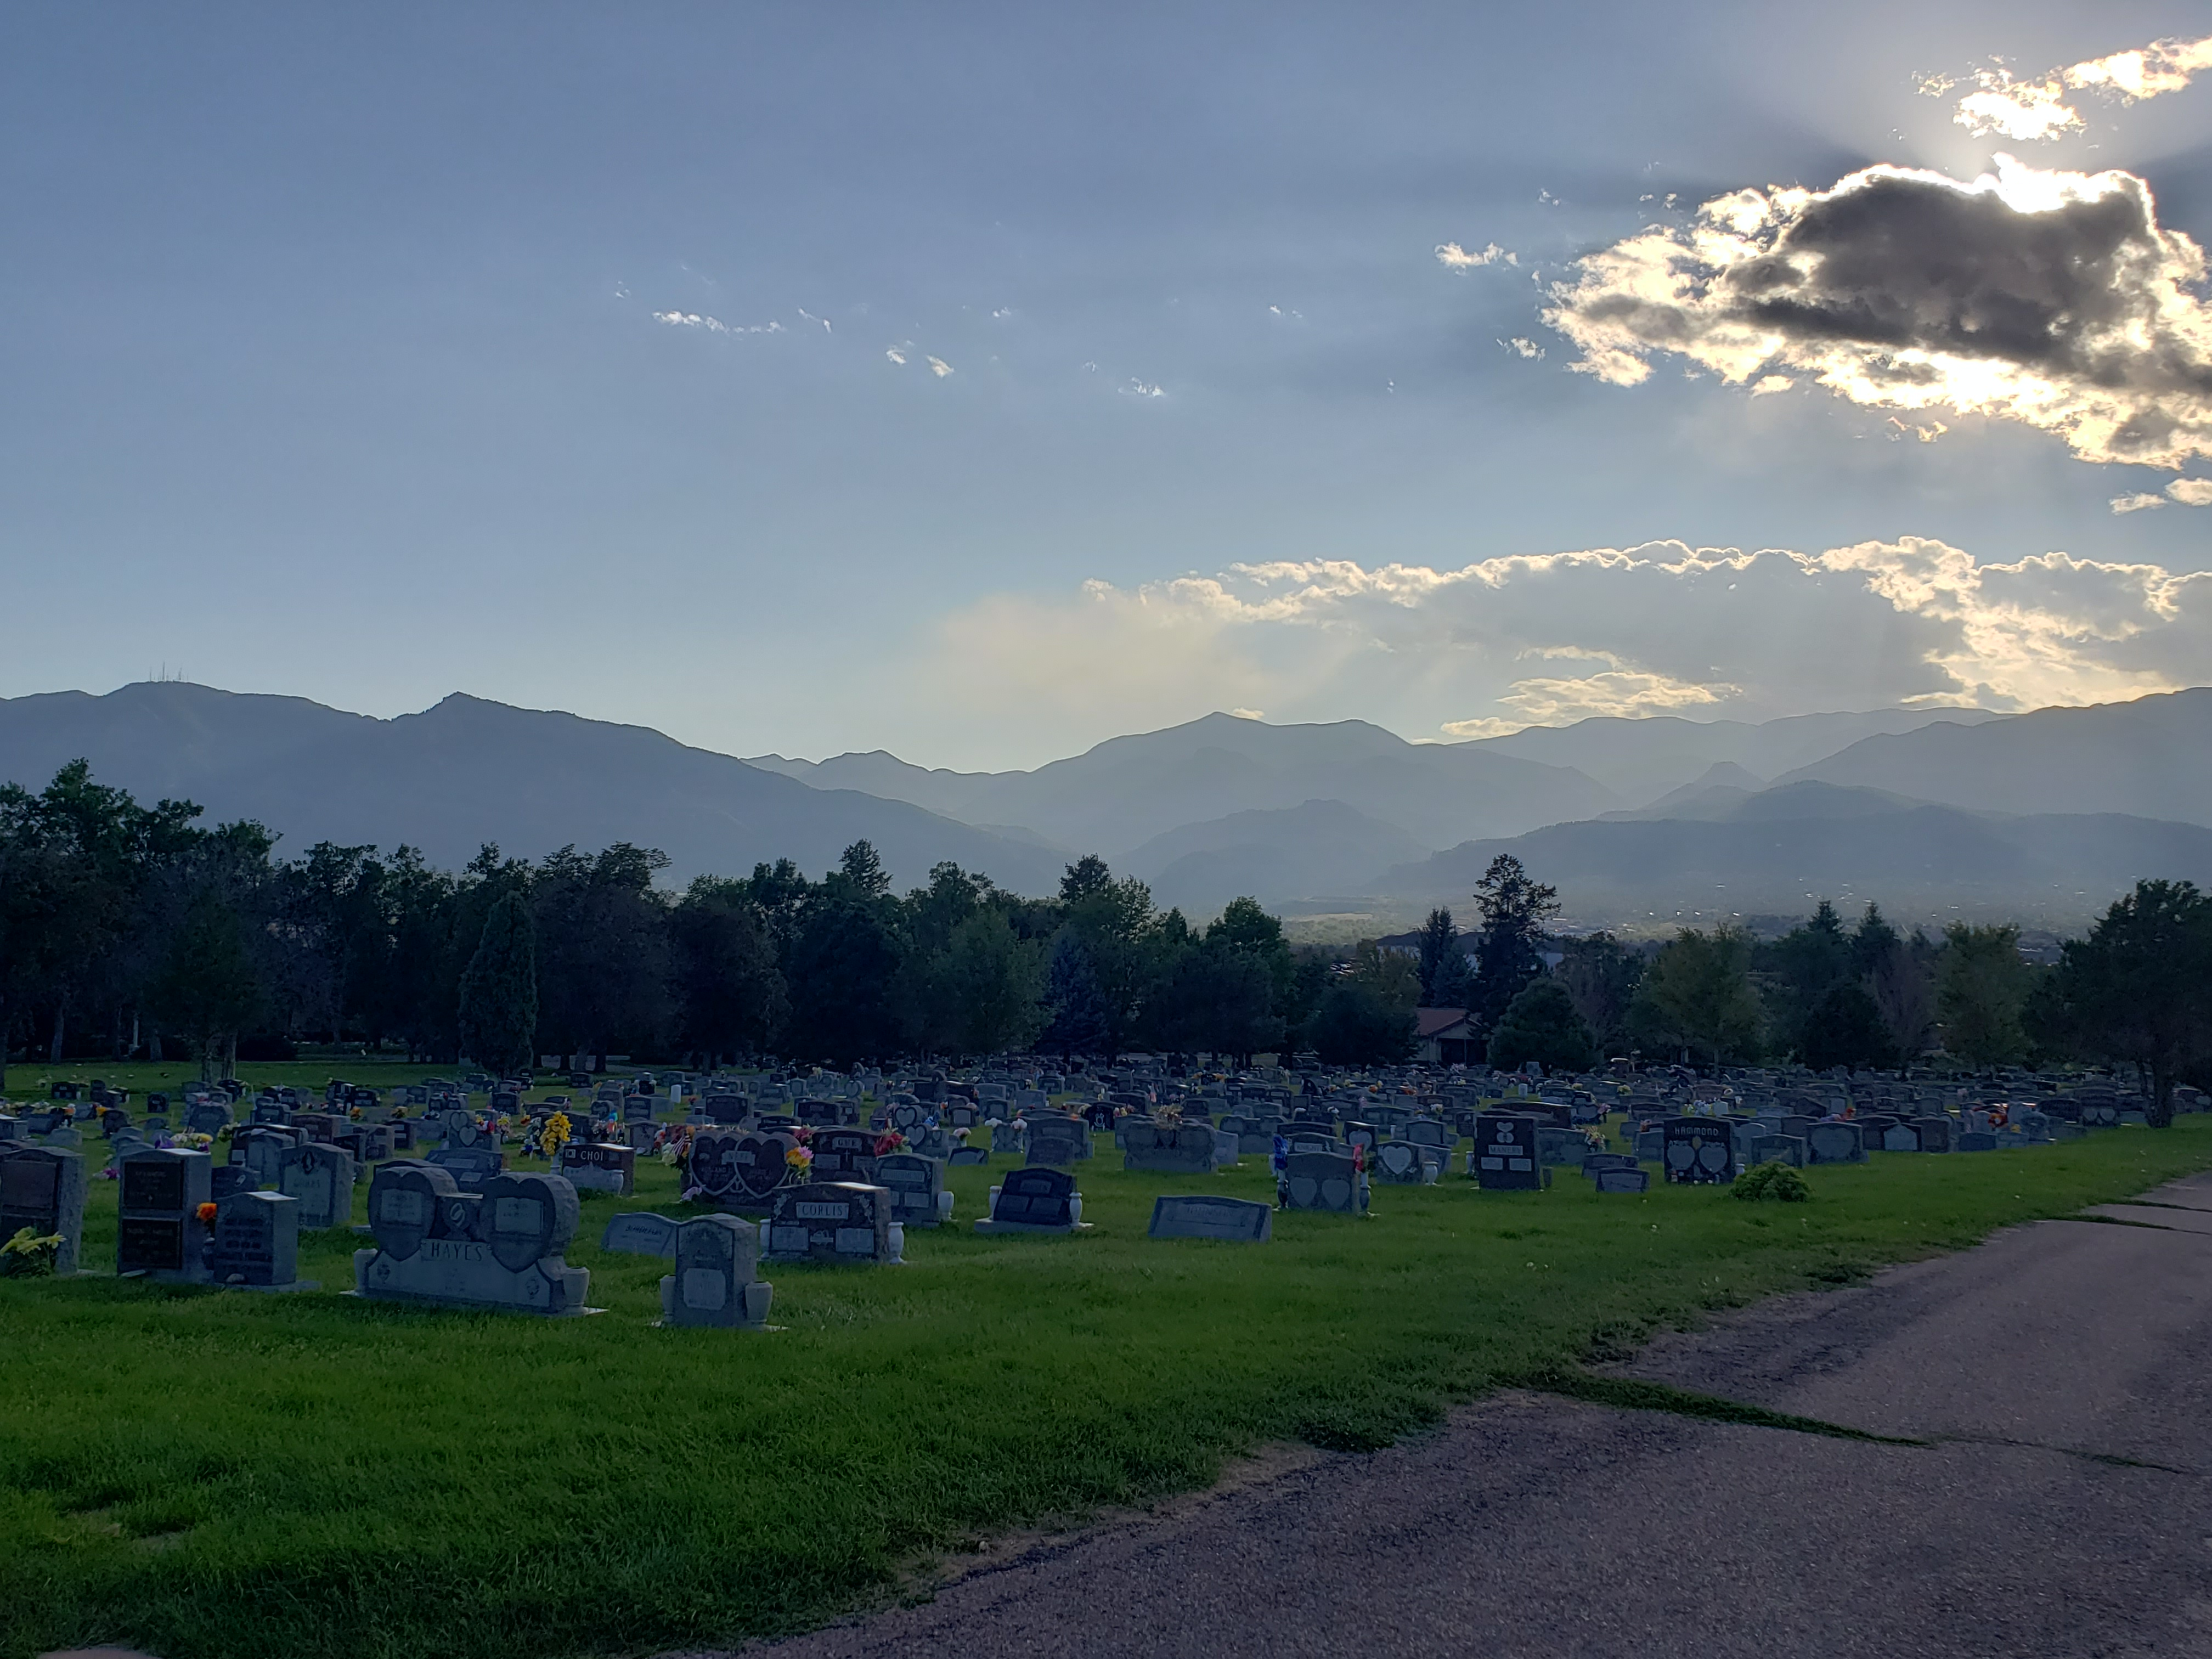 Evergreen cemetery: rows of headstones with trees and mountains in the background